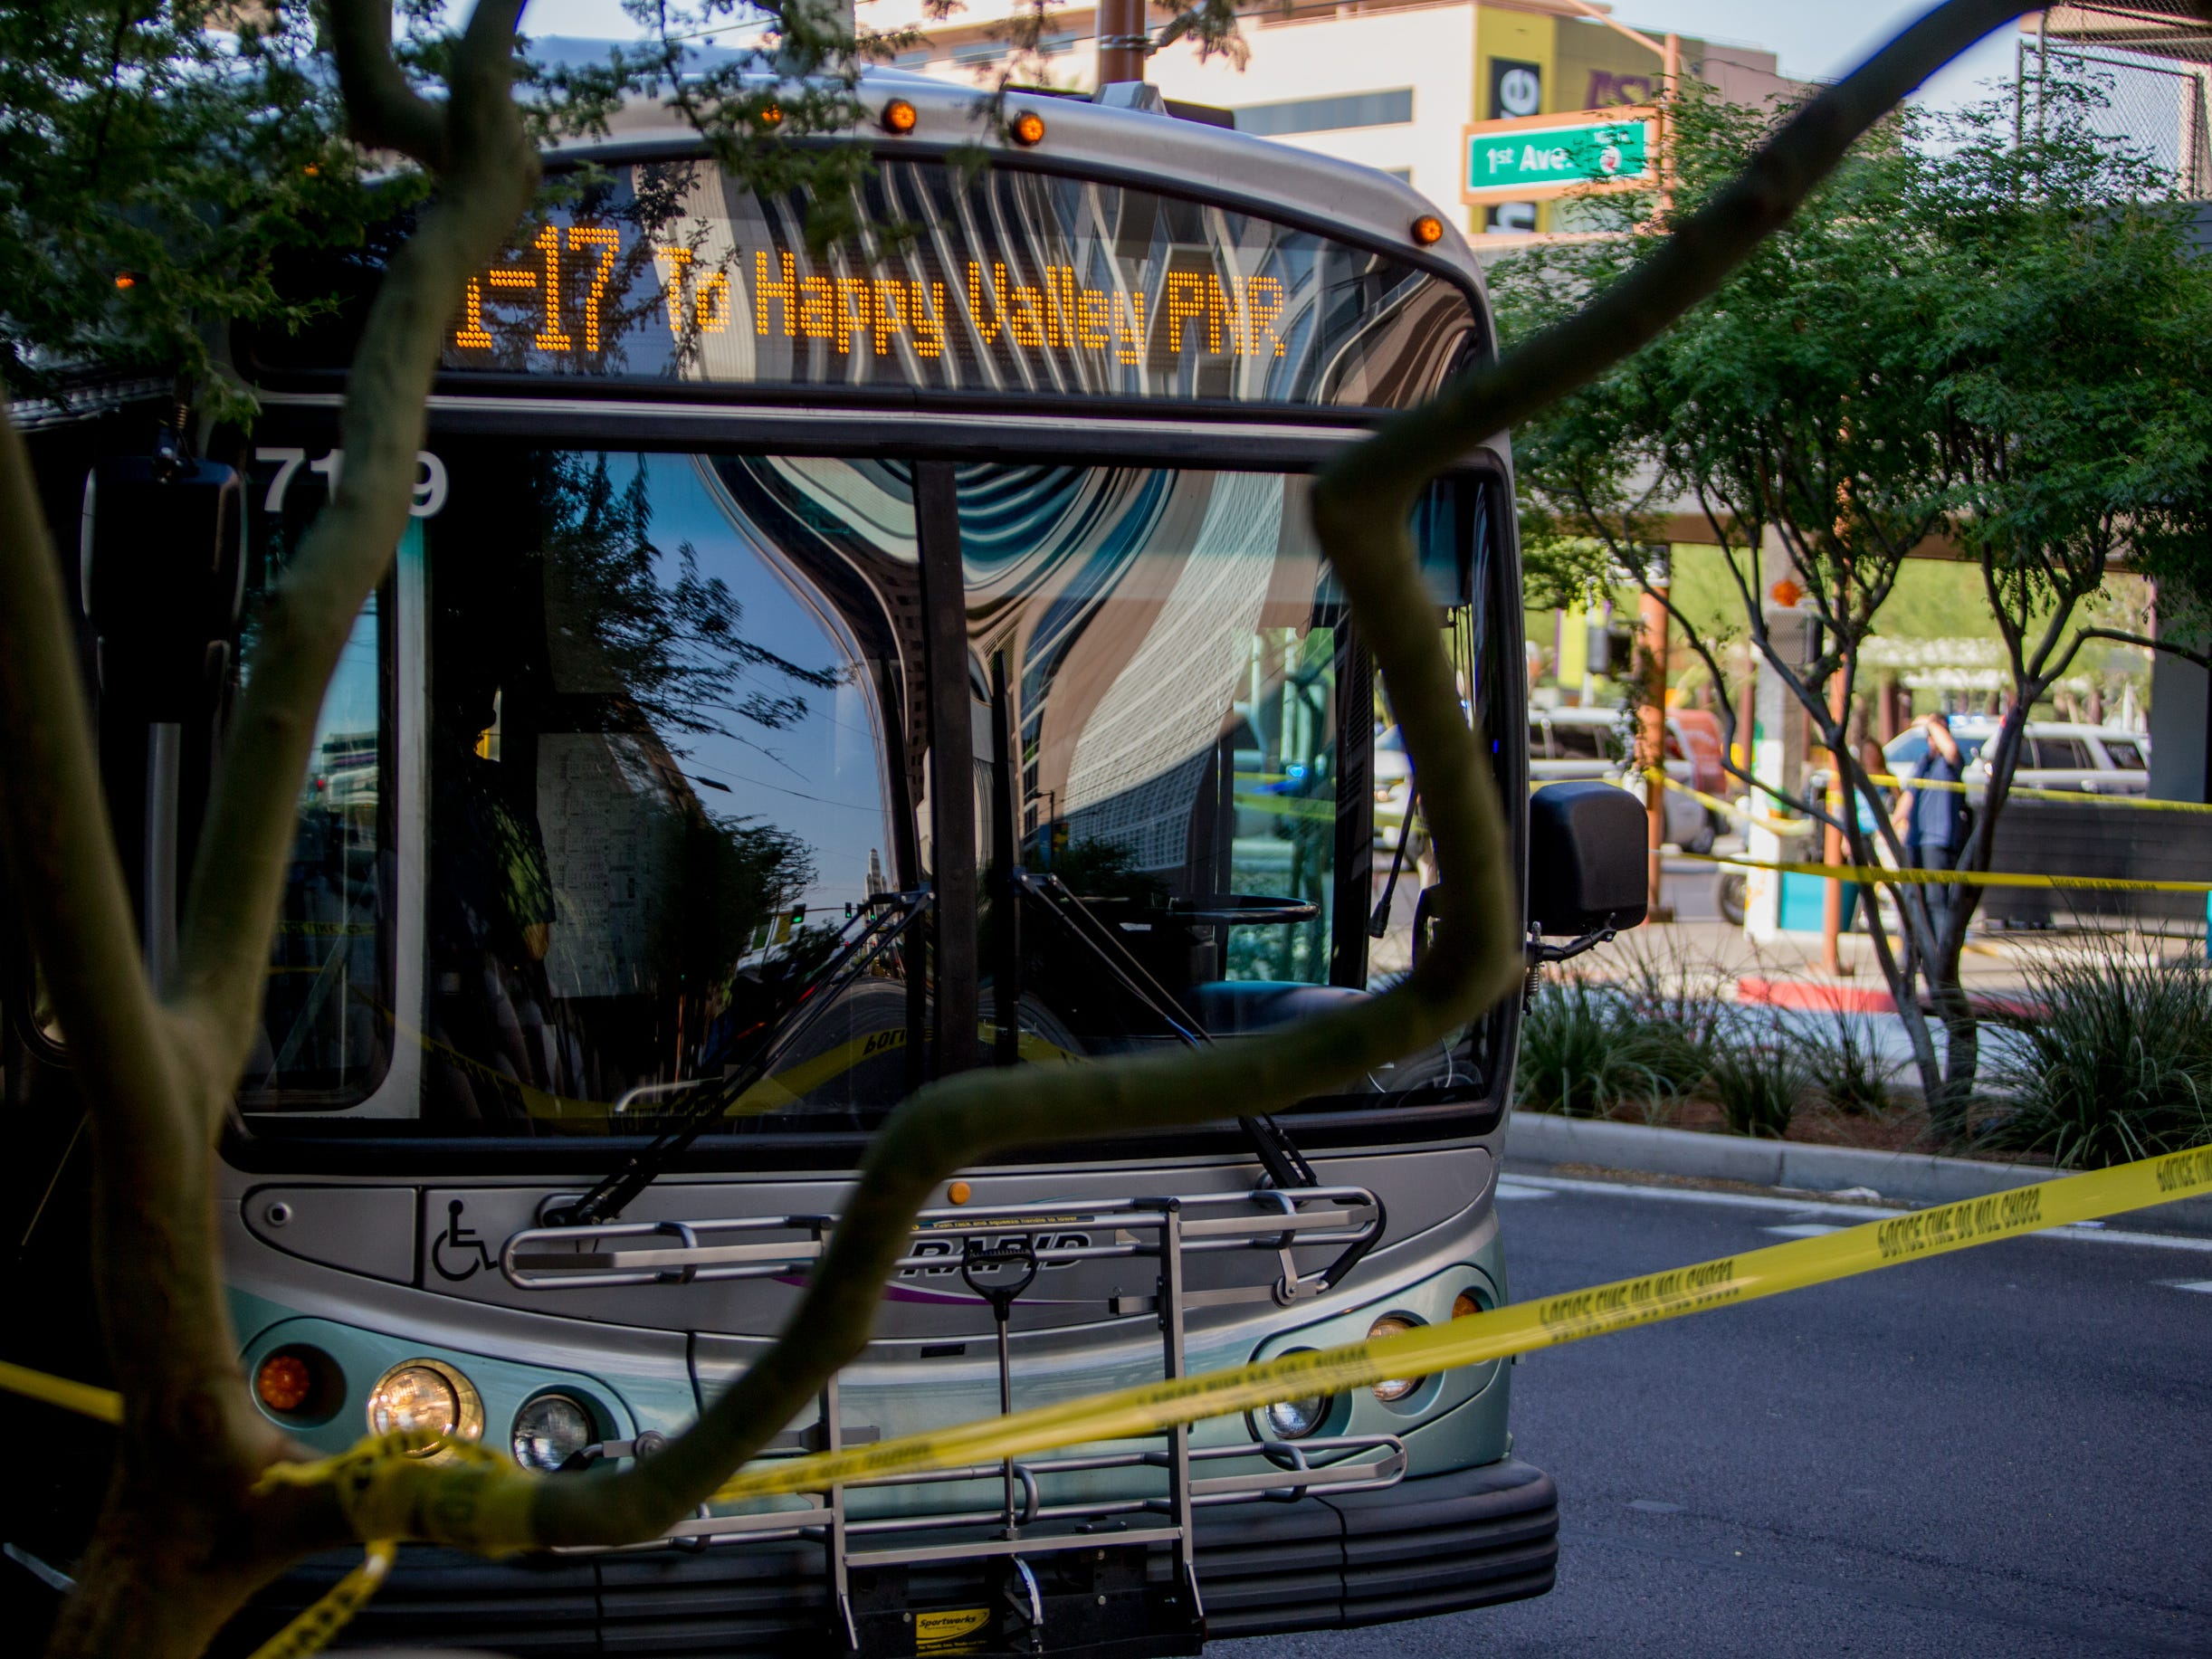 A city bus struck a pedestrian on August 1, 2018, on the corner of 1st Avenue and East Van Buren Street.